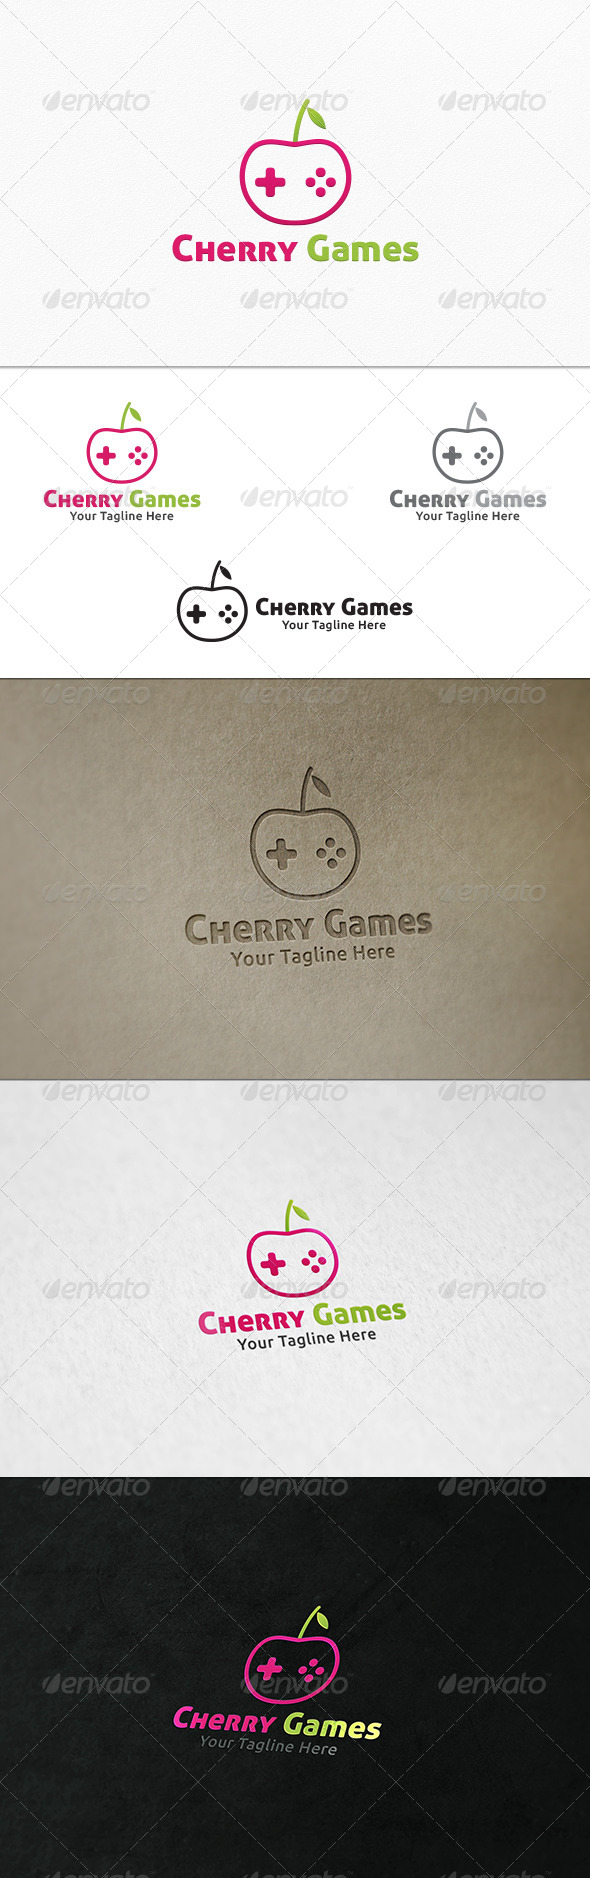 GraphicRiver Cherry Games Logo Template 7700949